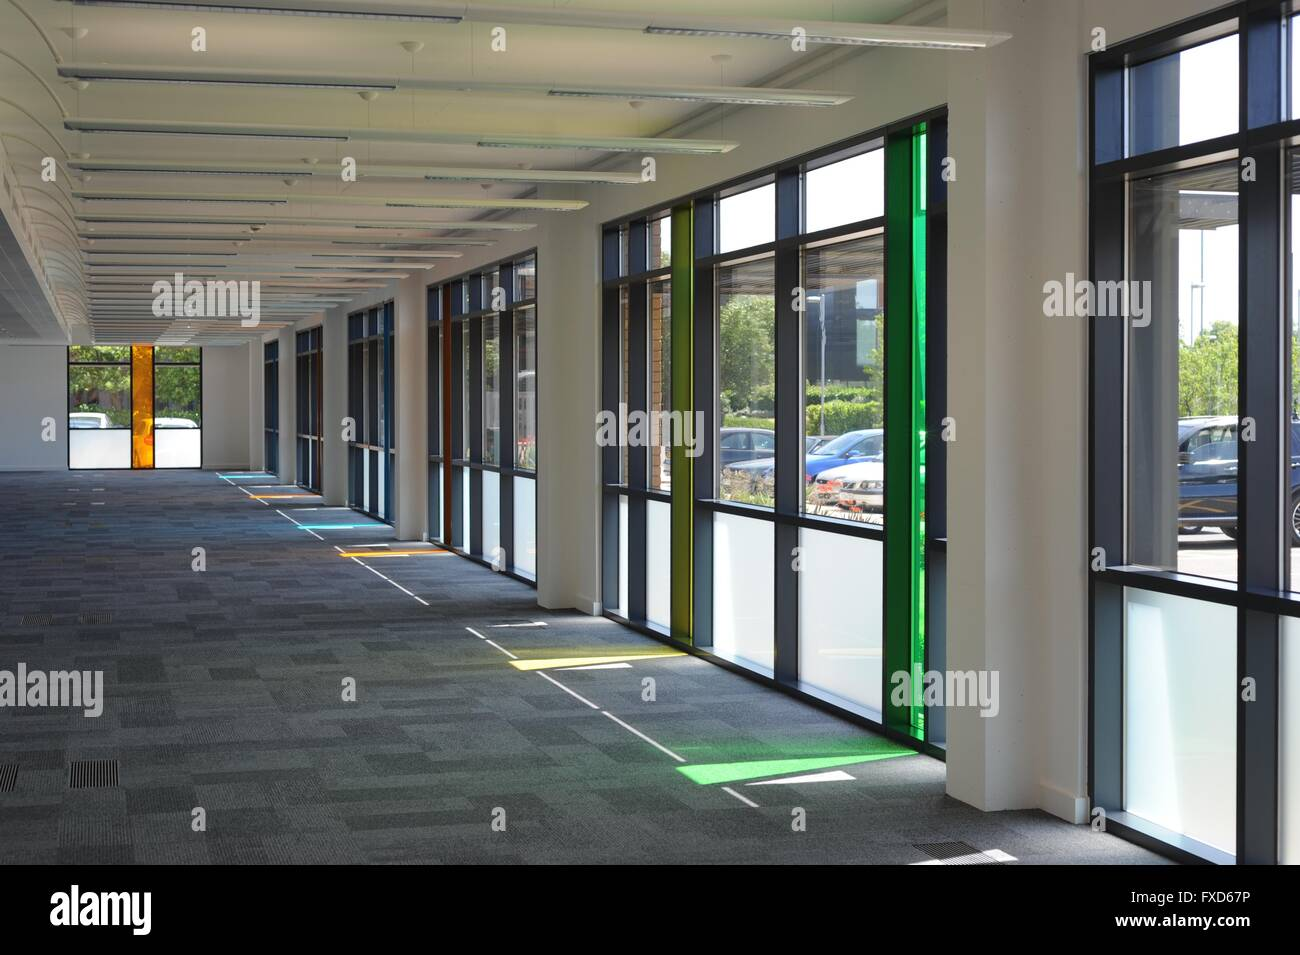 Vacant commercial interiors, office space - Stock Image